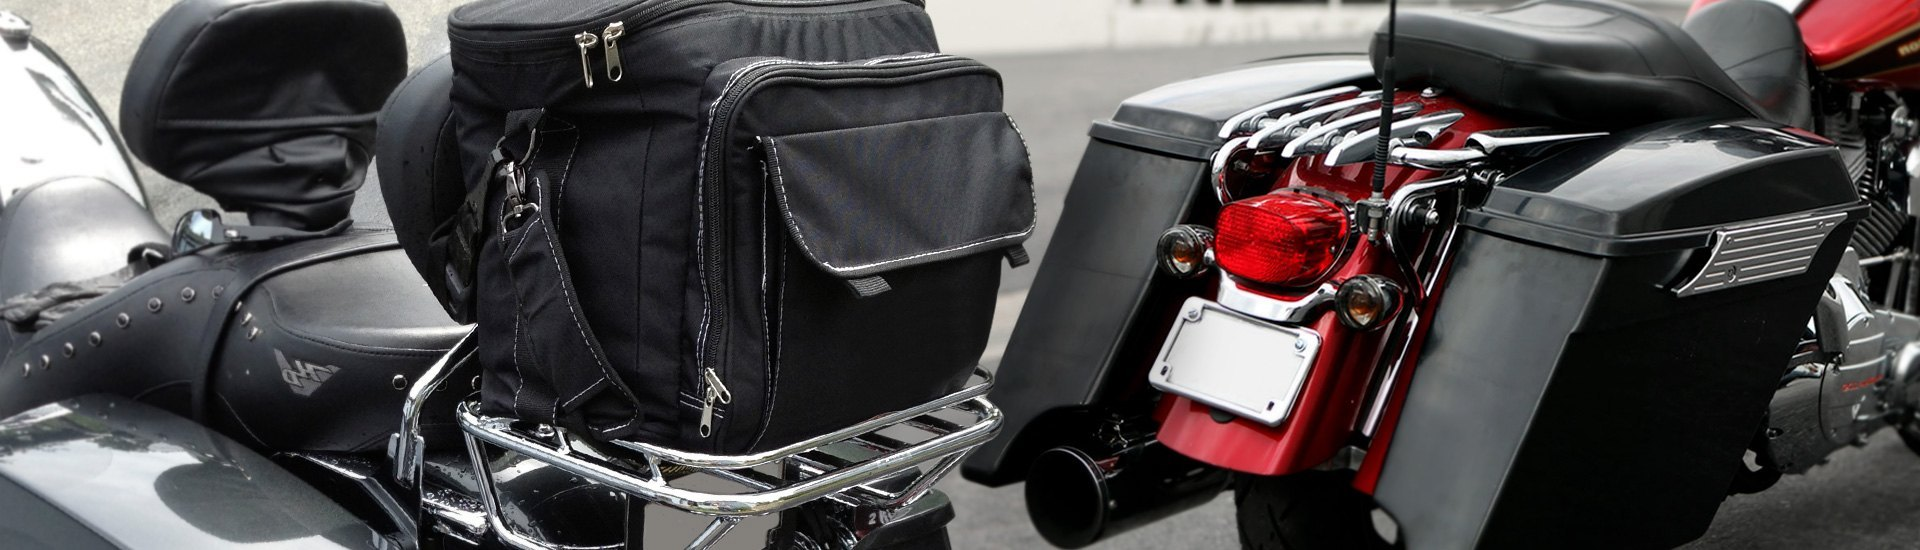 Suzuki SV650 Motorcycle Luggage Systems & Saddlebags | Bags -  MOTORCYCLEiD.comMOTORCYCLE iD